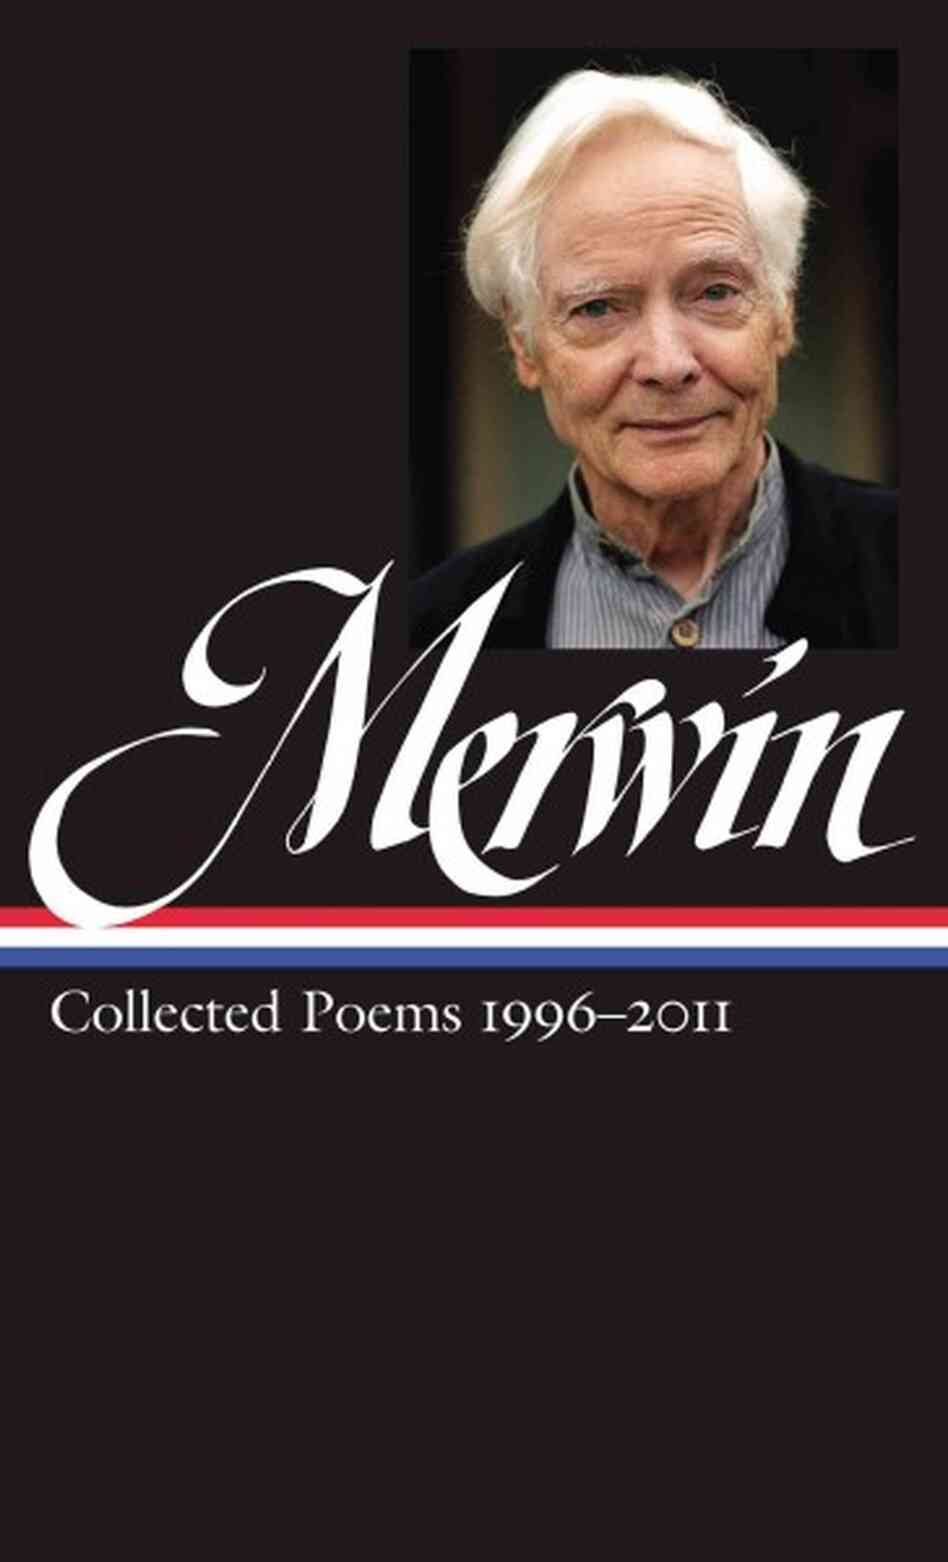 W. S. Merwin Collected Poems 1996-2011